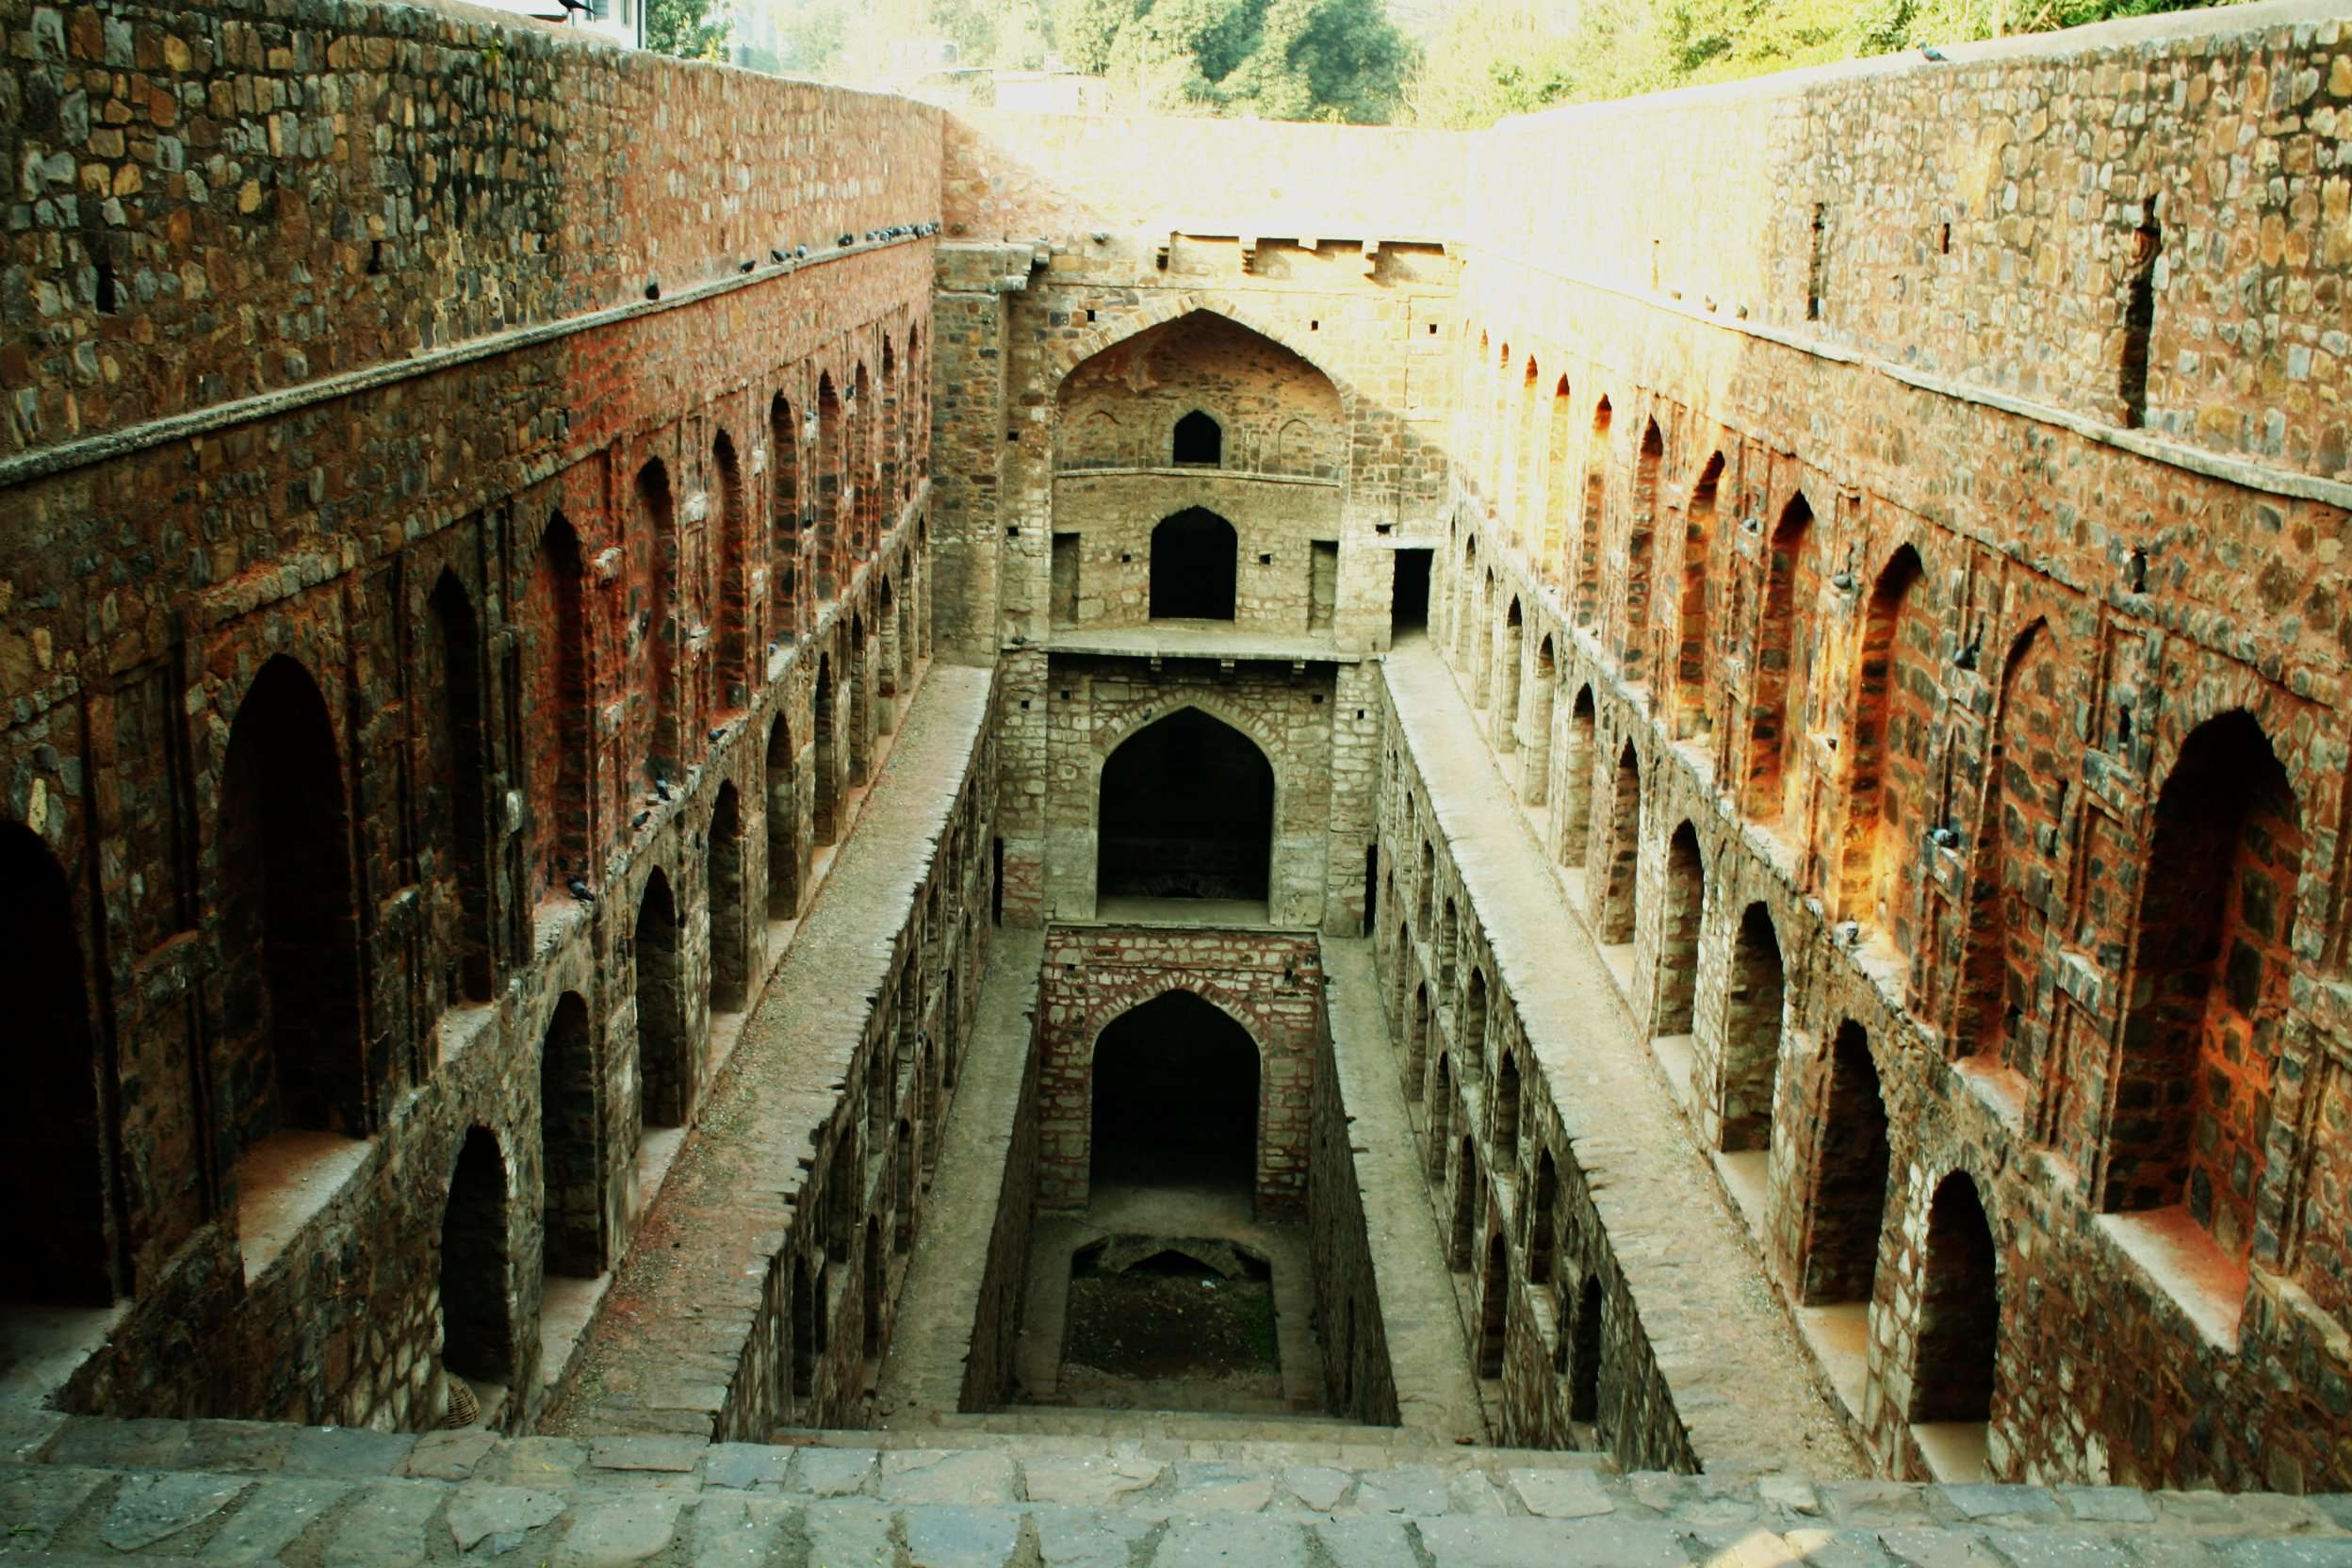 Baolis of Delhi: Tracing the steps of incredible stepwells